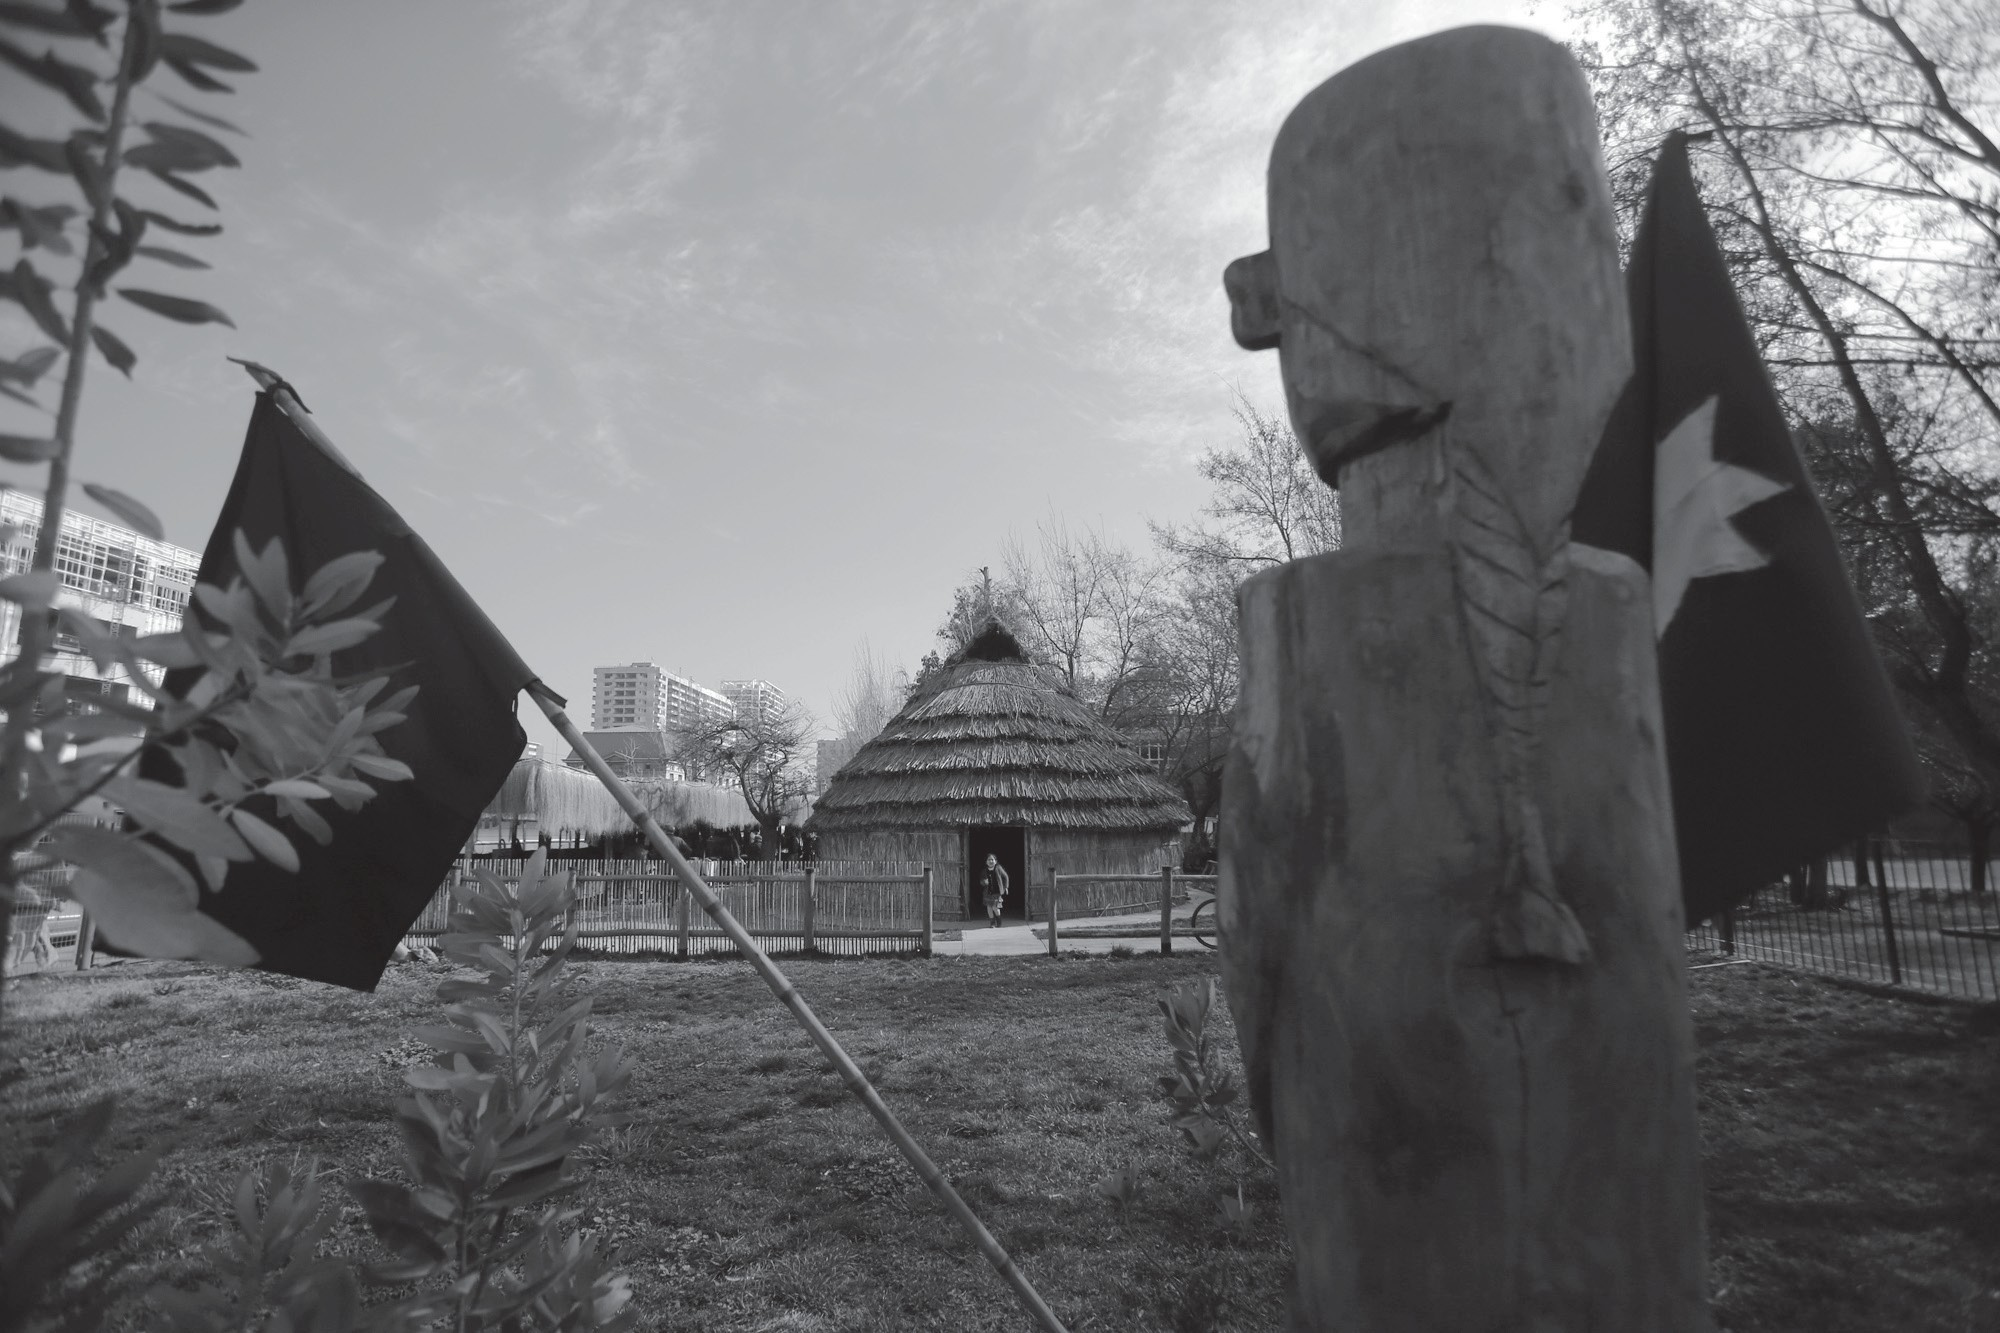 In this July 29 photo, a ruka, or a traditional Mapuche thatched home stands between modern buildings next to the Barros Luco hospital, in Santiago, Chile.